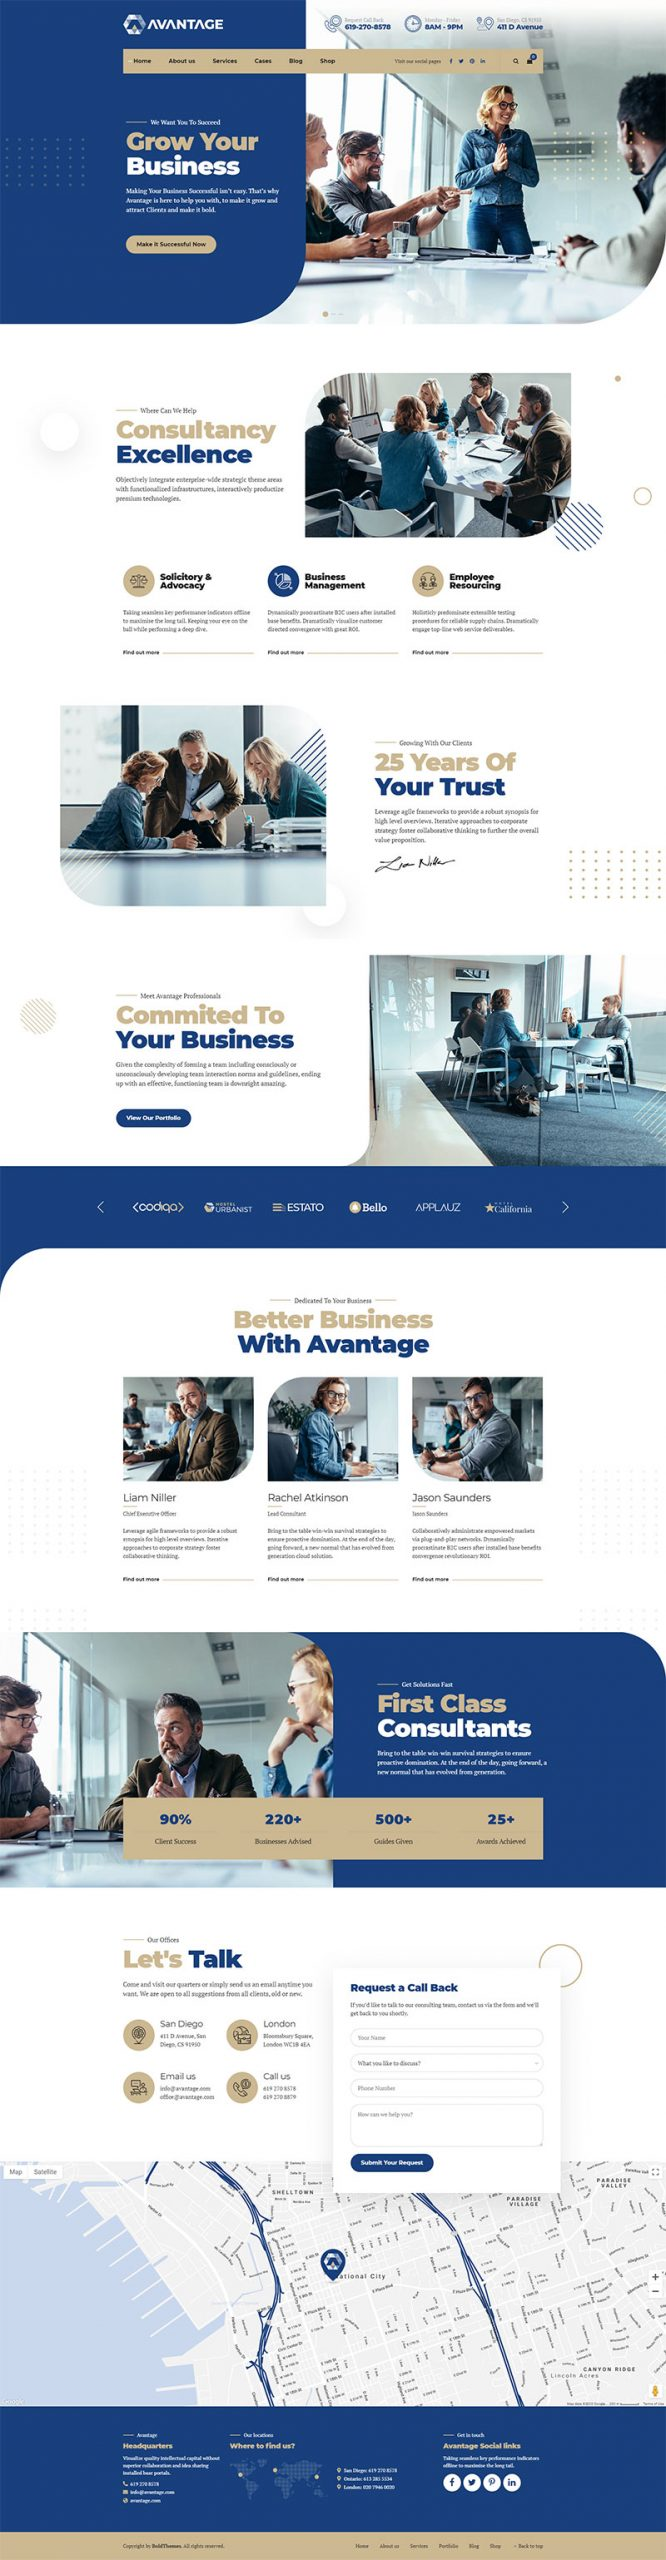 http://avantage.bold-themes.com/wp-content/uploads/2020/05/demo-06-strategy-scaled.jpg